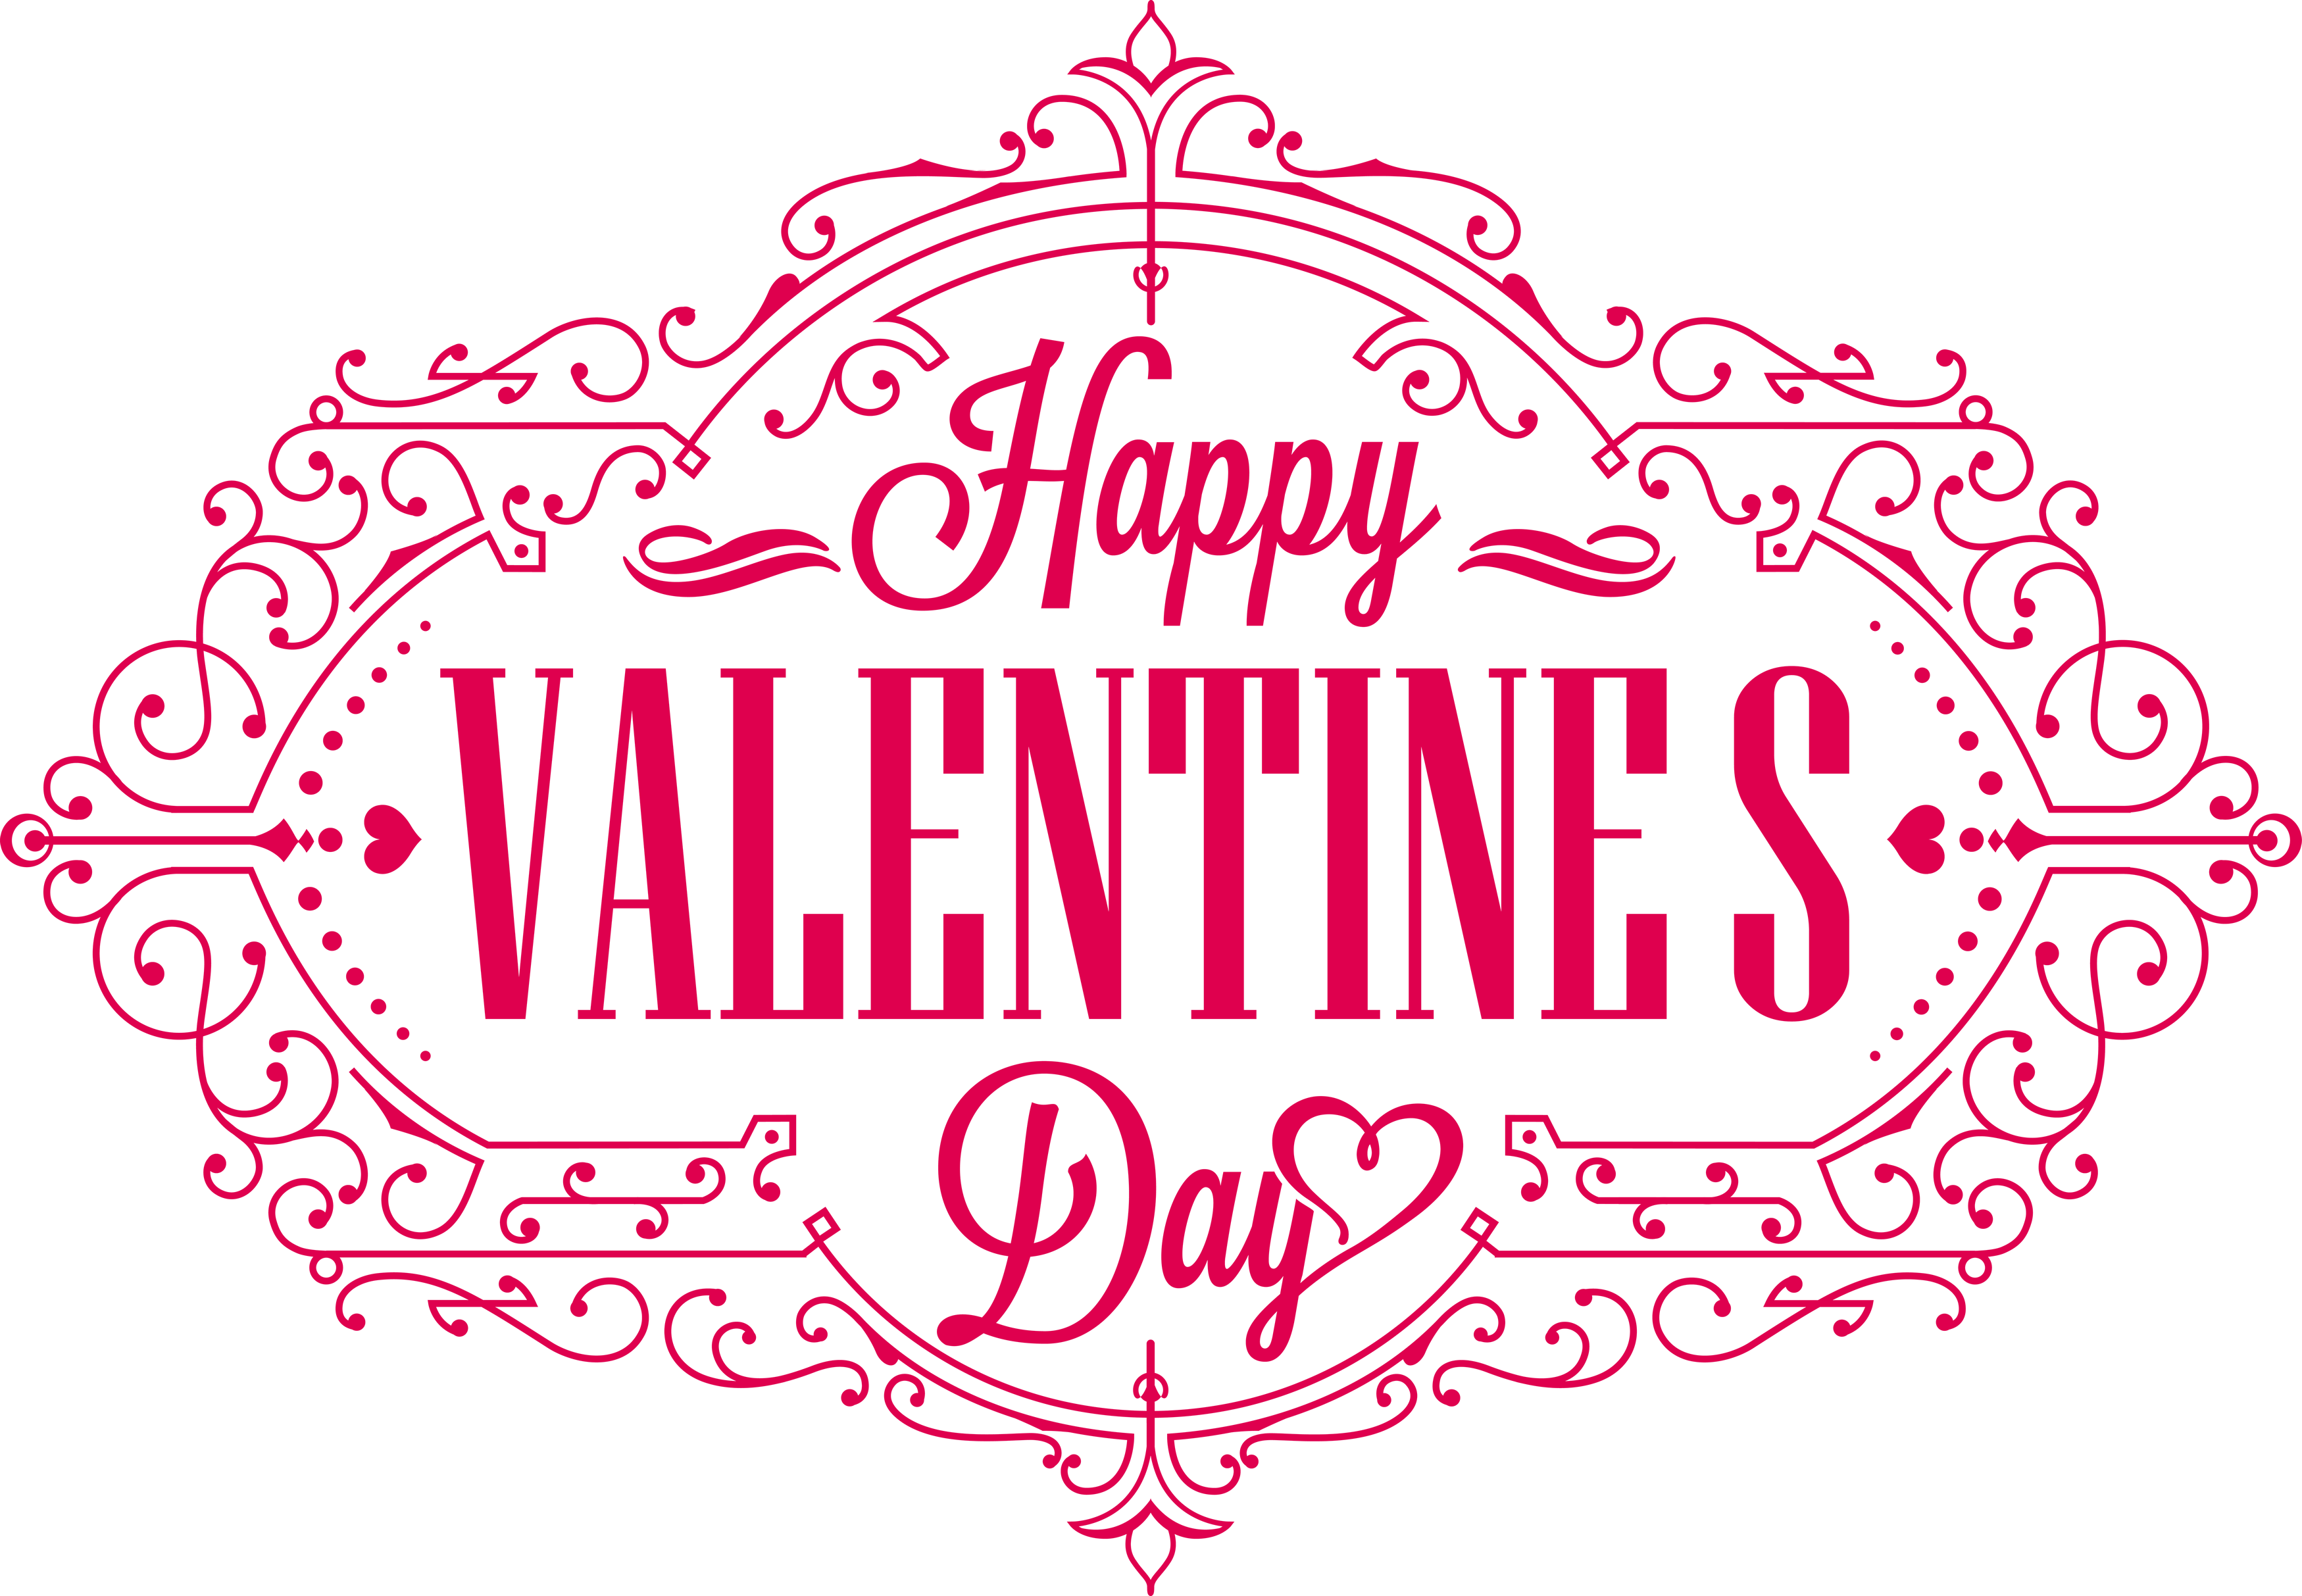 Valentines day images png. Valentine hd transparent pluspng